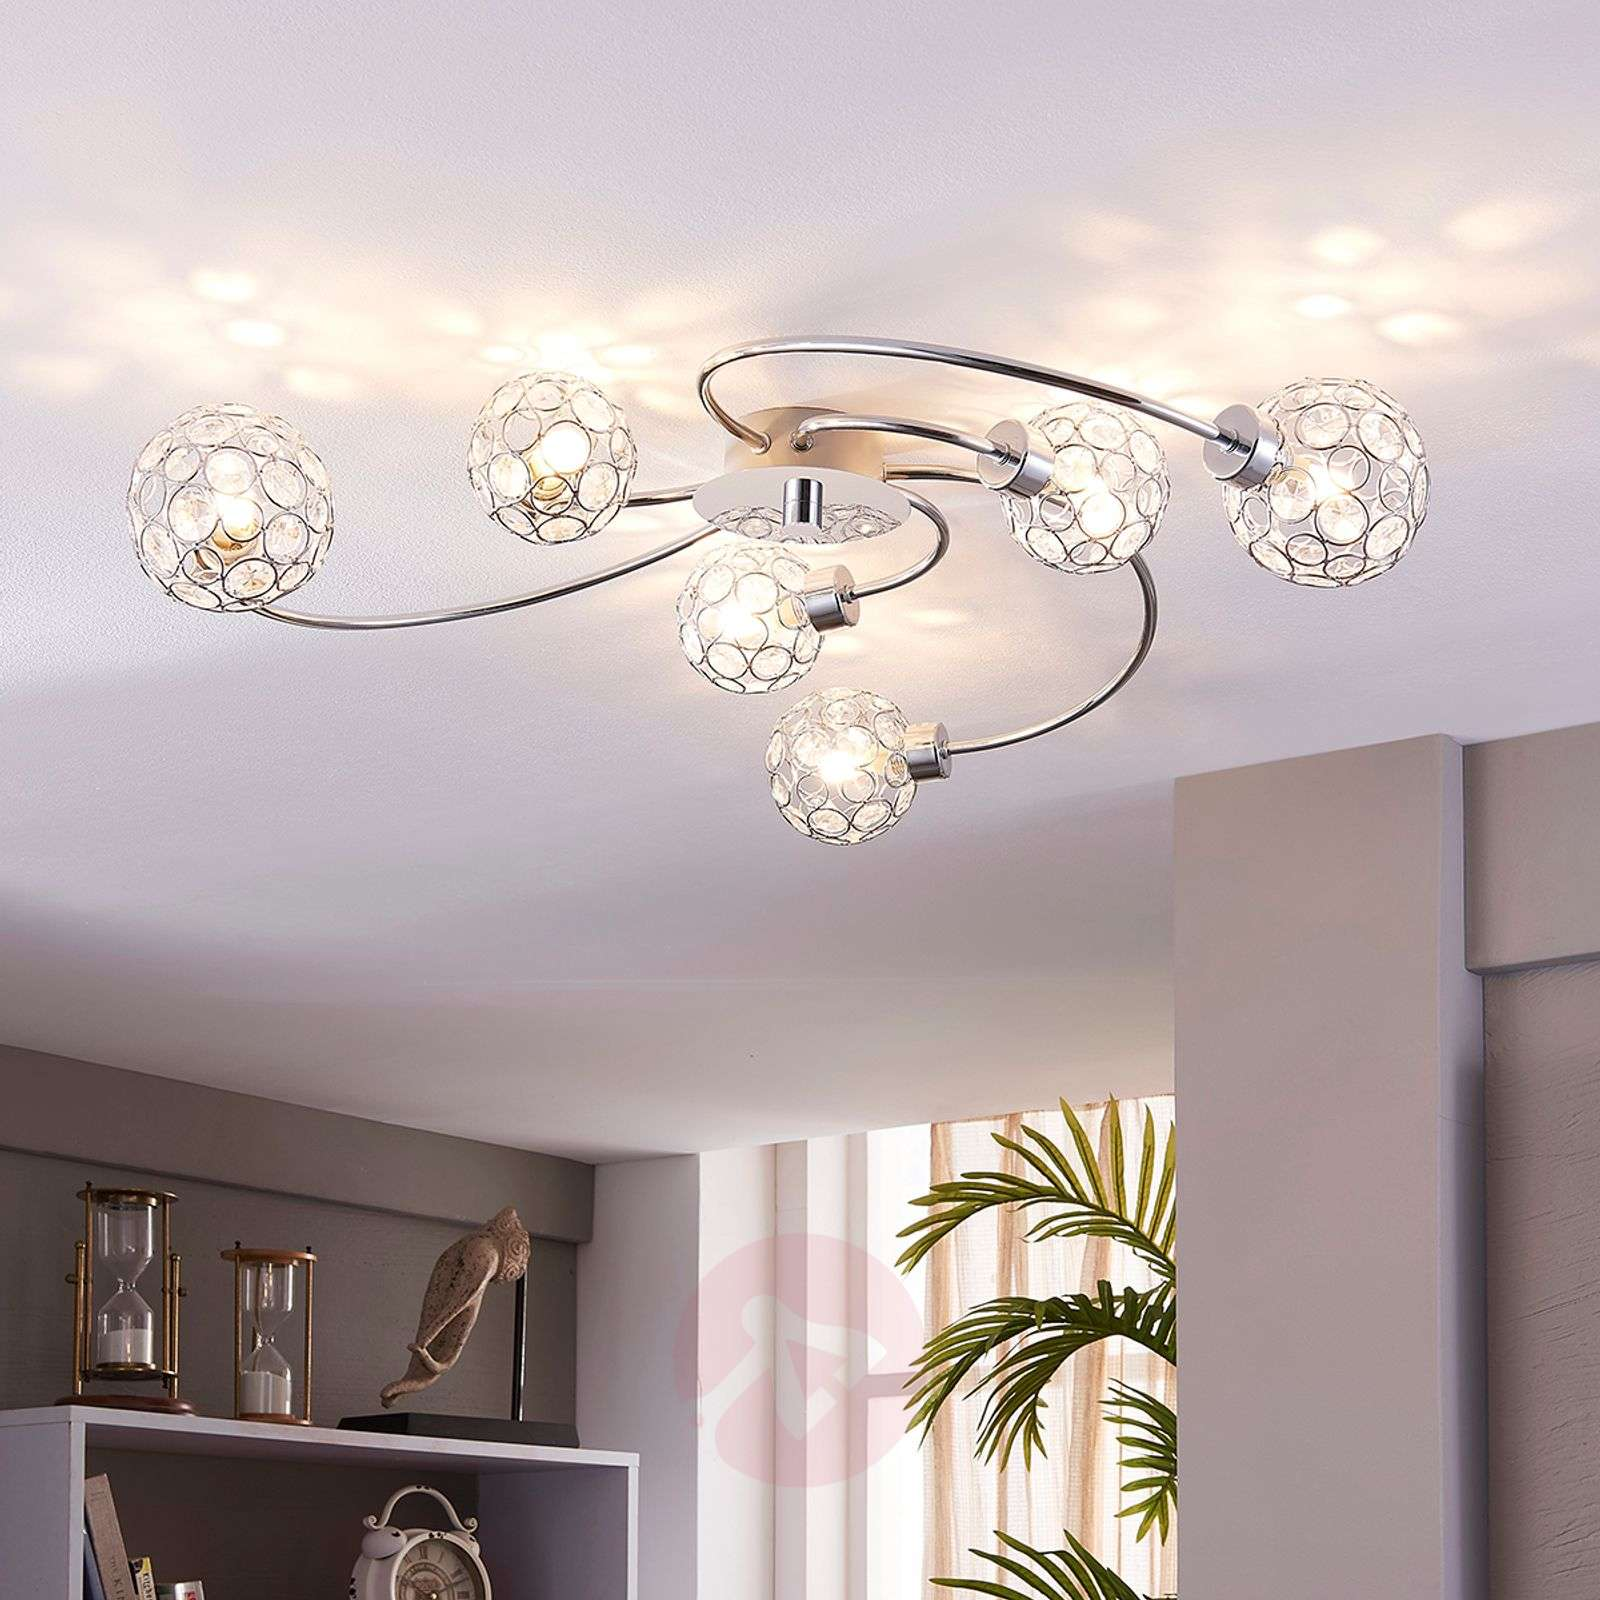 Decorative led ceiling light tyron lights decorative led ceiling light tyron 9620805 013 aloadofball Images